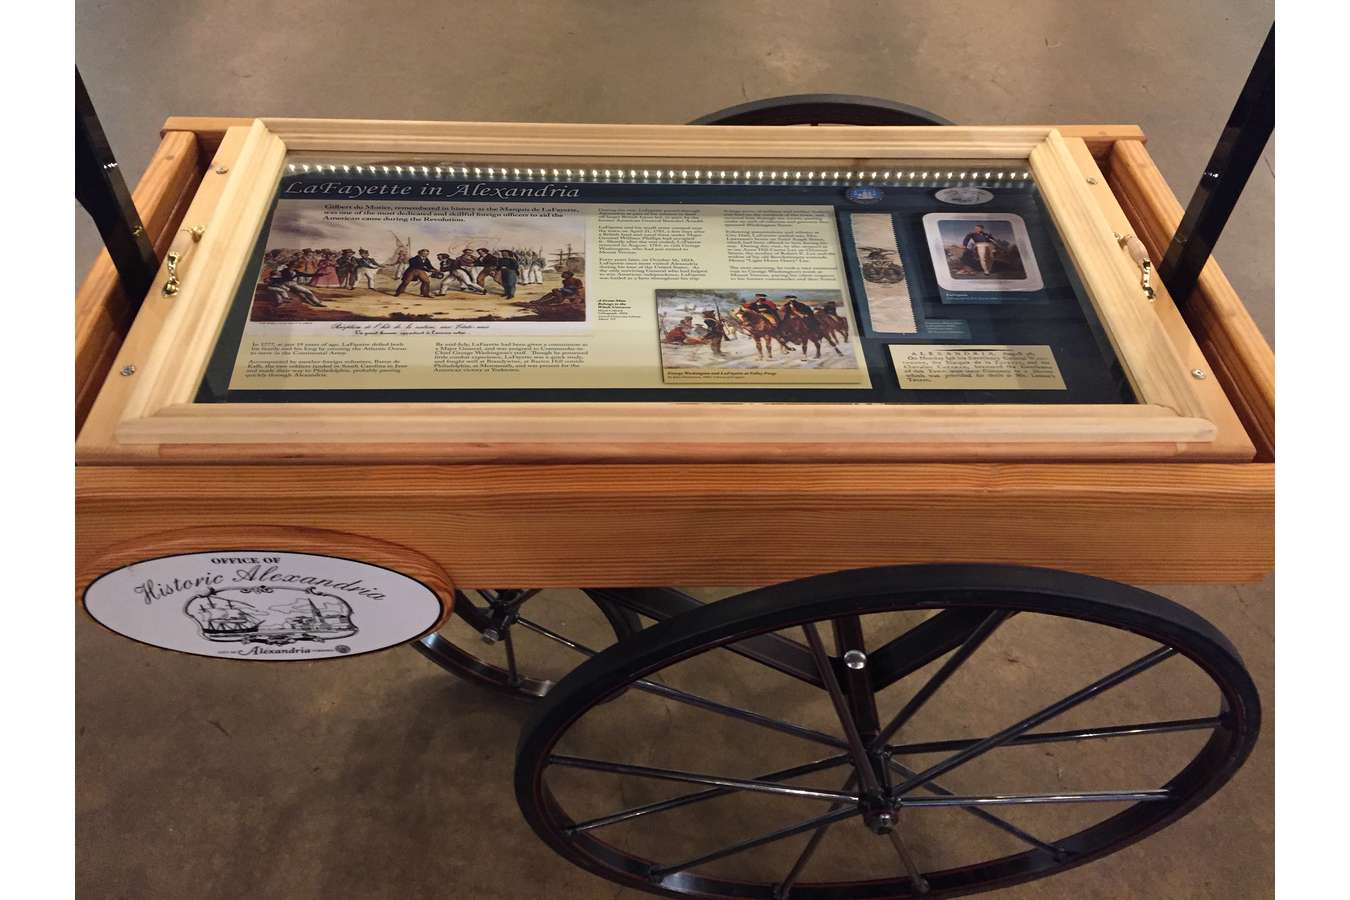 Lafayette Cart : History cart commemorating anniversary of the Marquis de Lafayette's visit to Alexandria